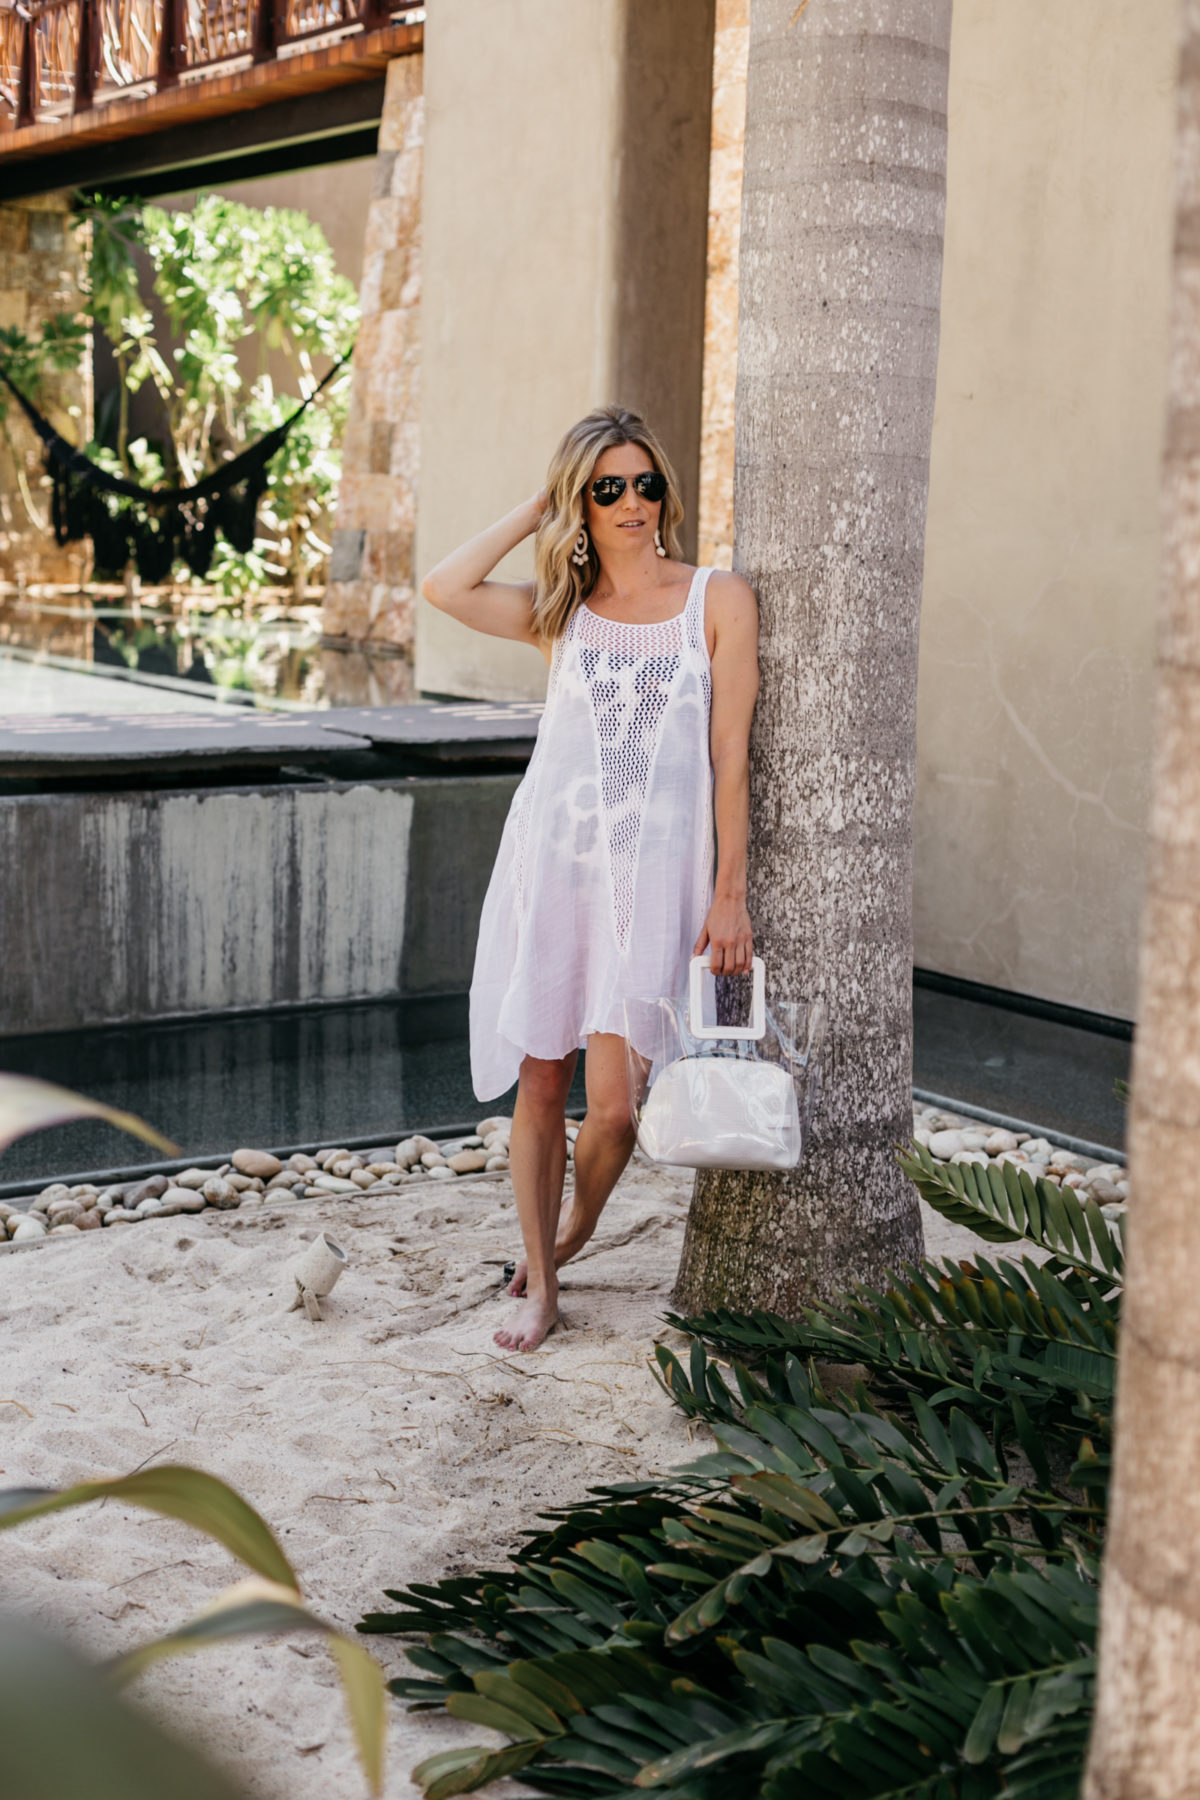 Brooke is featuring a White Beach Cover-Up // Leopard One Piece Swimsuit // Beach Bag